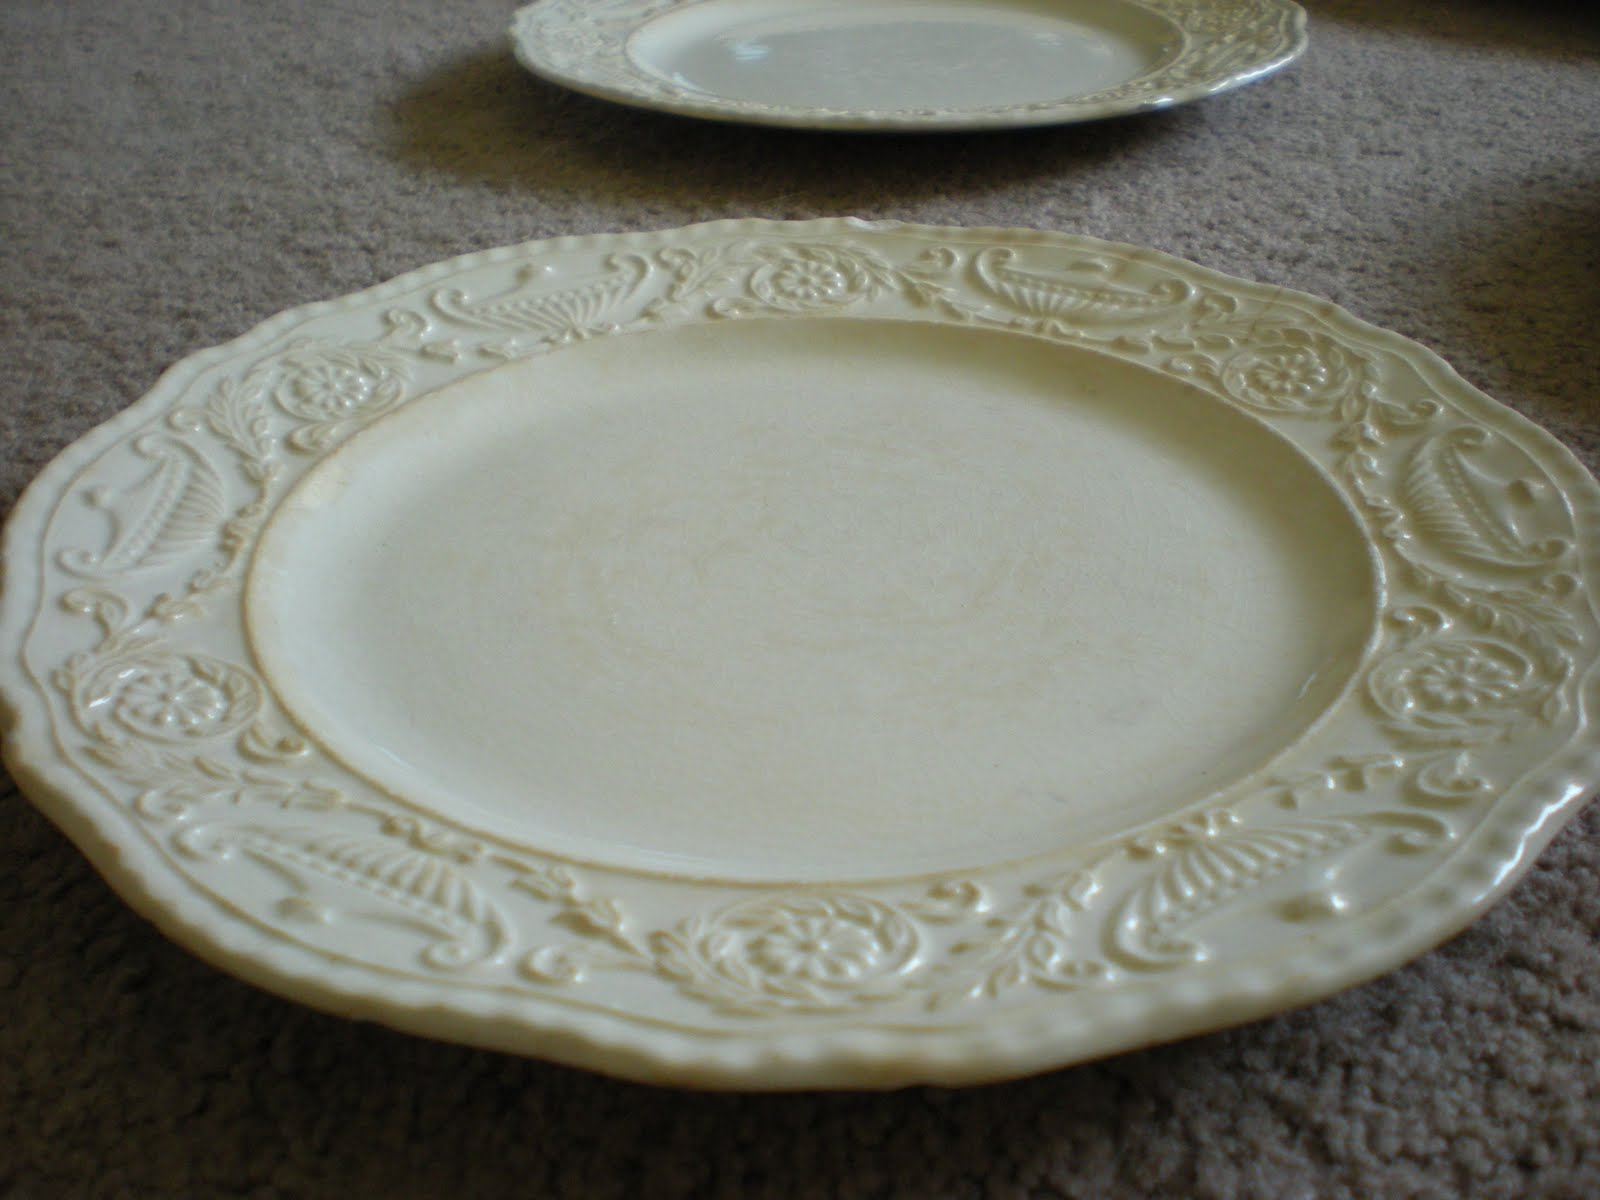 The platter in the center was purchased at the antique mall for $5.00. It doesnu0027t have any st&ing on it at all so I am clueless as to its value. & Plates and an Update